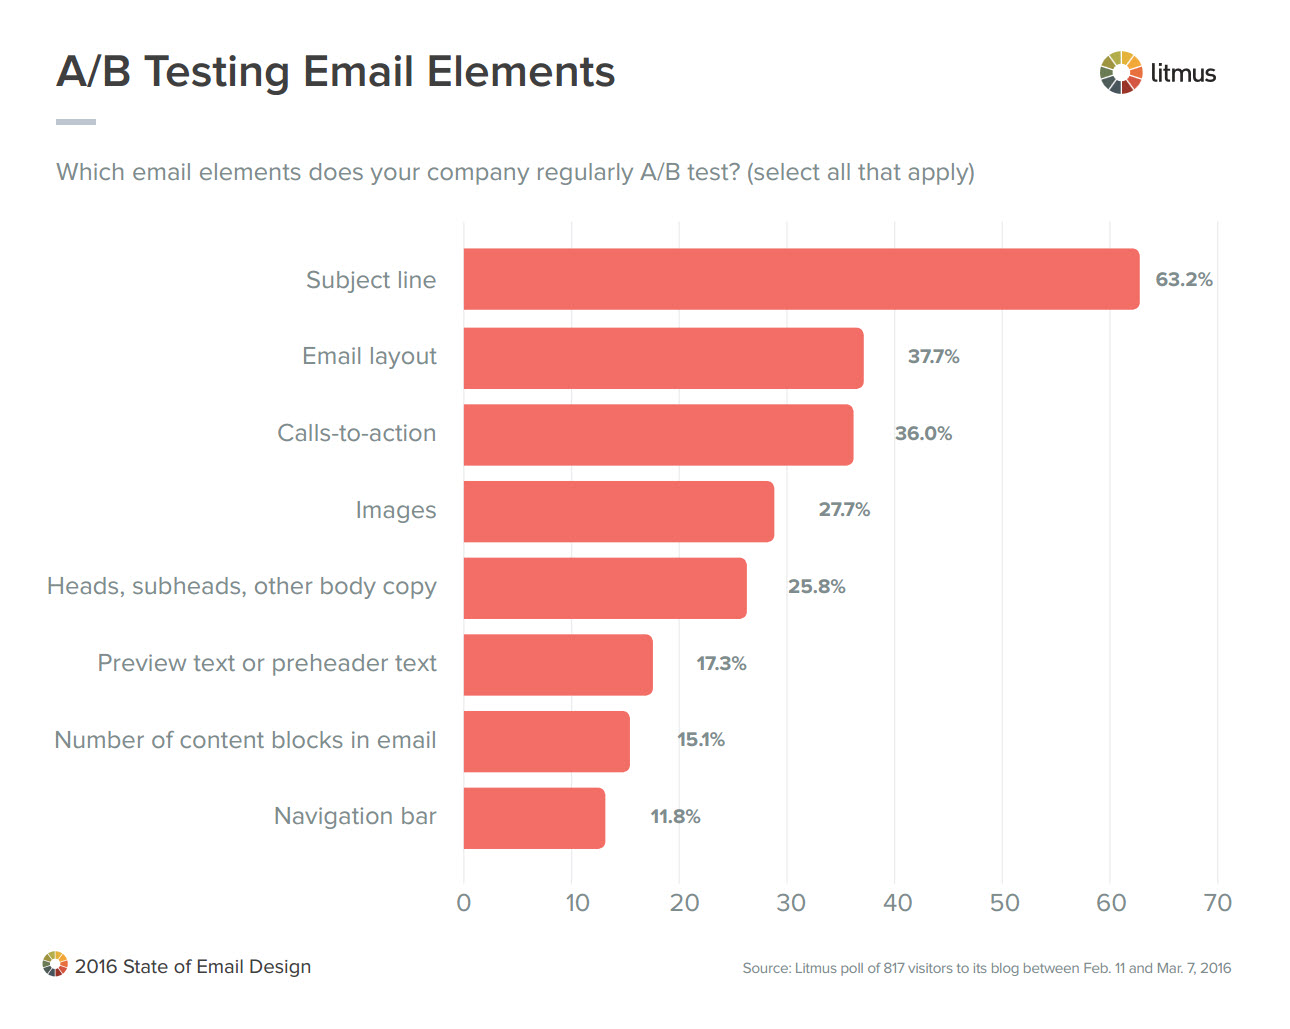 A/B Testing Email Elements